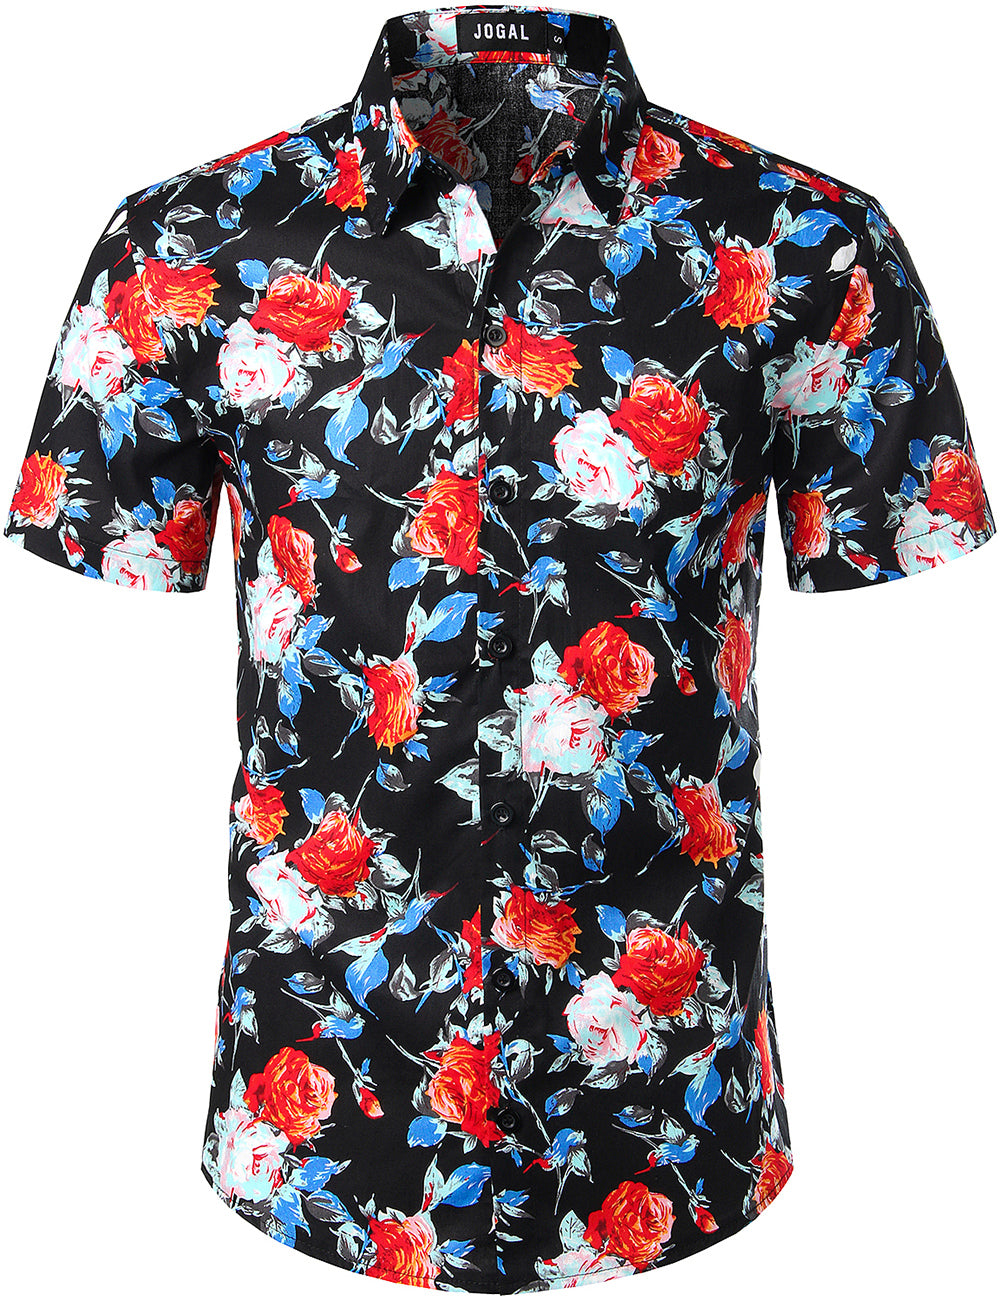 JOGAL Men's Flower Casual Button Down Short Sleeve Hawaiian Shirt(Black Camellia)